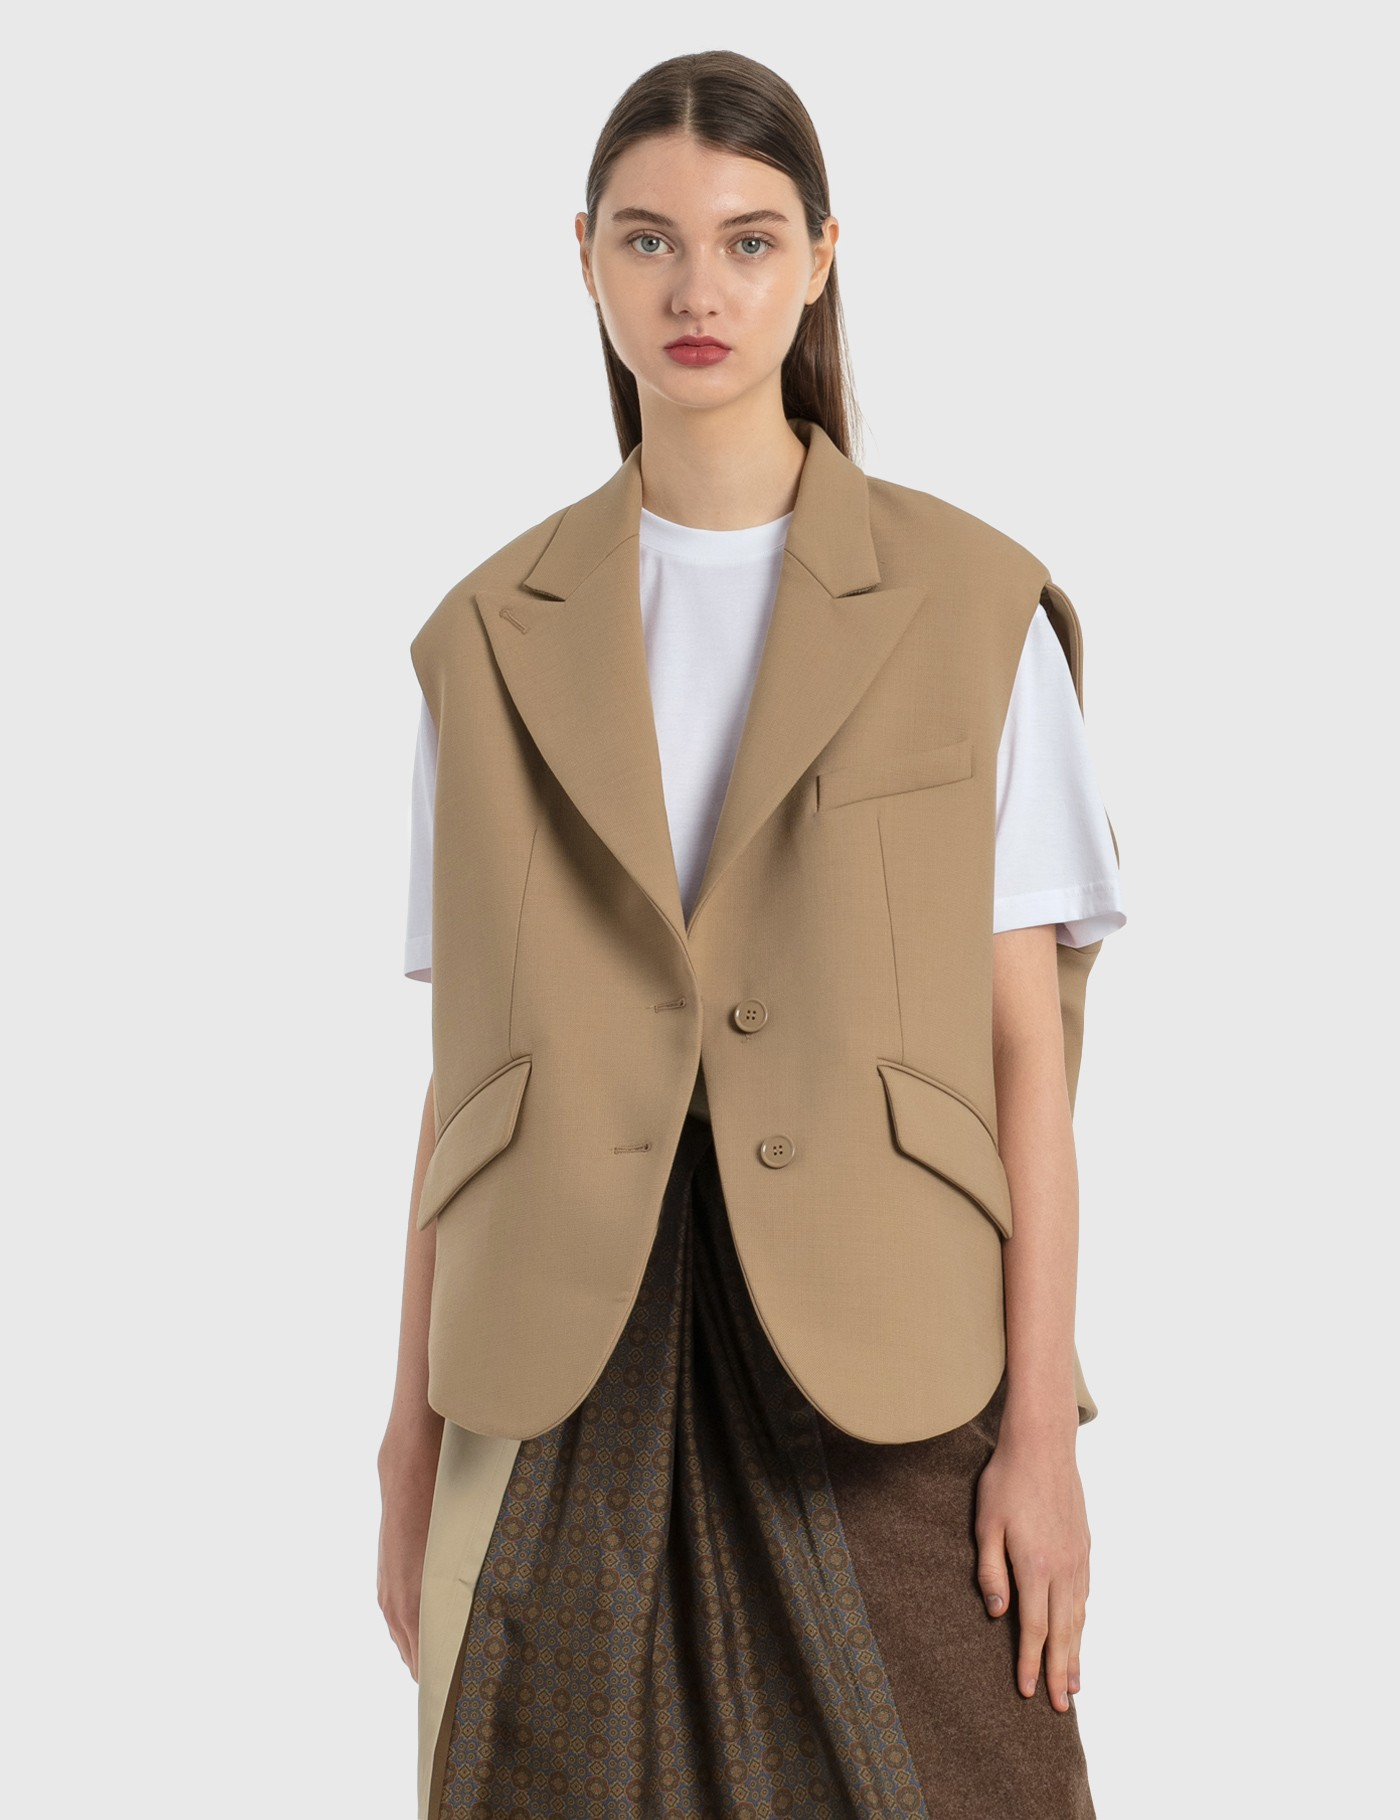 Mm6 Maison Margiela Wools CIRCLE SLEEVELESS BLAZER